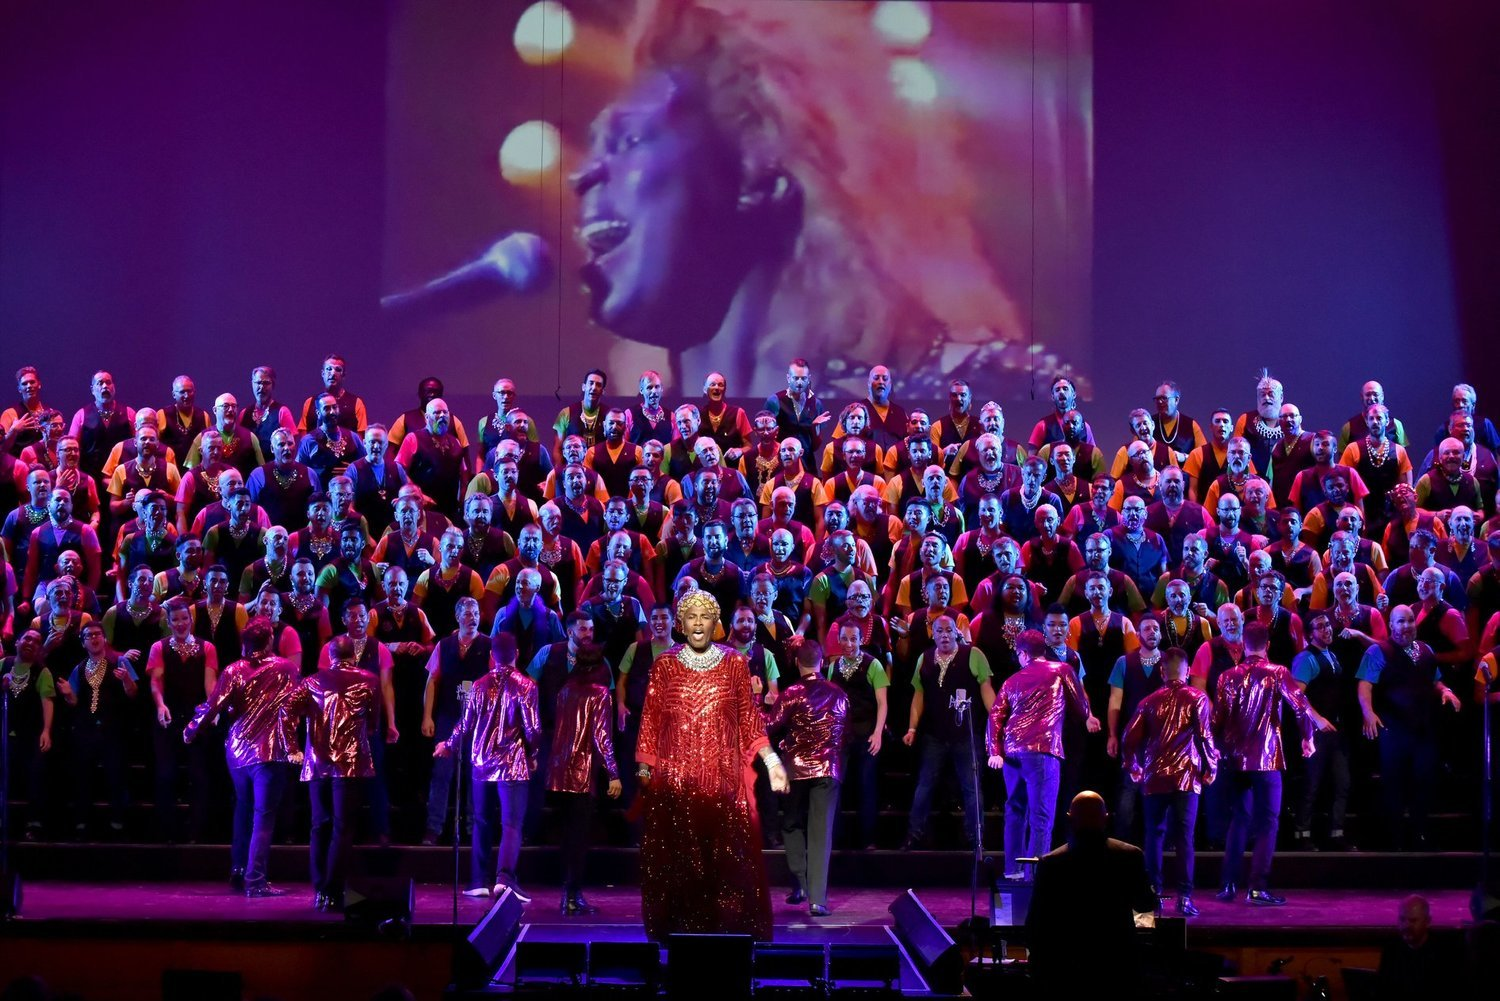 BWW Review: The San Francisco Gay Men's Chorus Presents QUEENS at The Sydney Goldstein Theater, a Retrospective of Powerful LGBTQ Queens From the 60's to Today